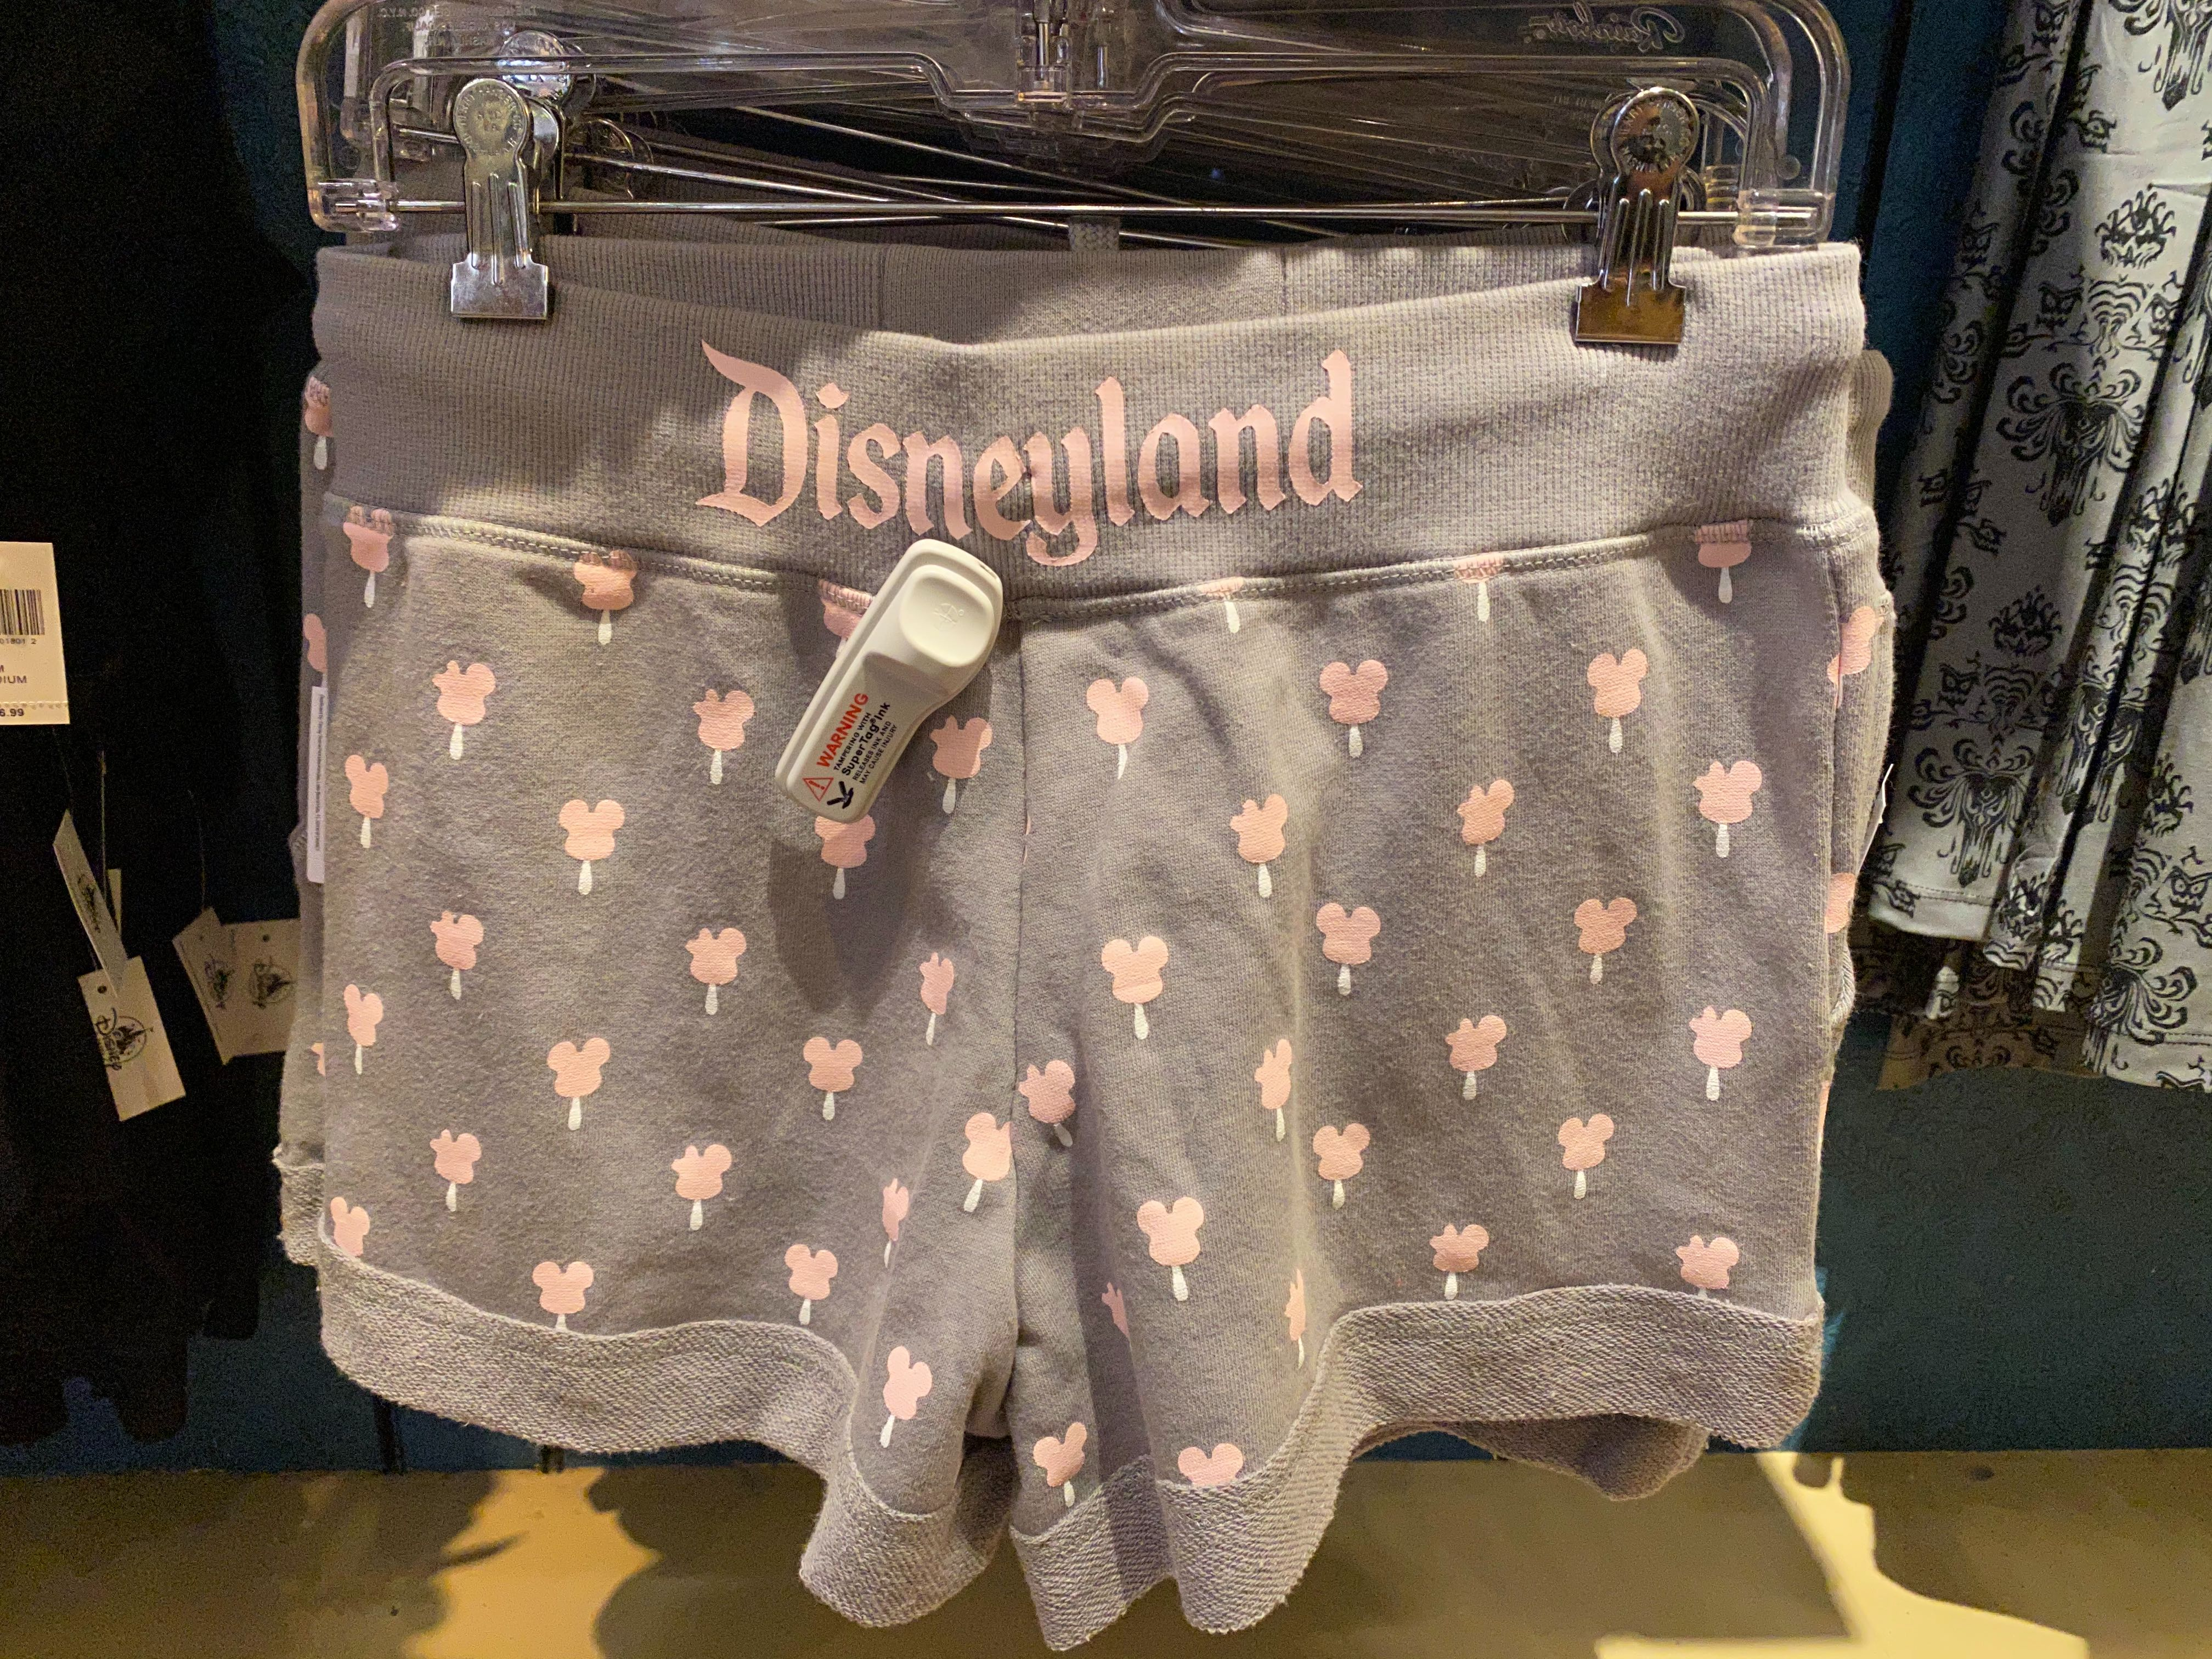 disneyland-icon-merch-02-23-2020-13.jpg